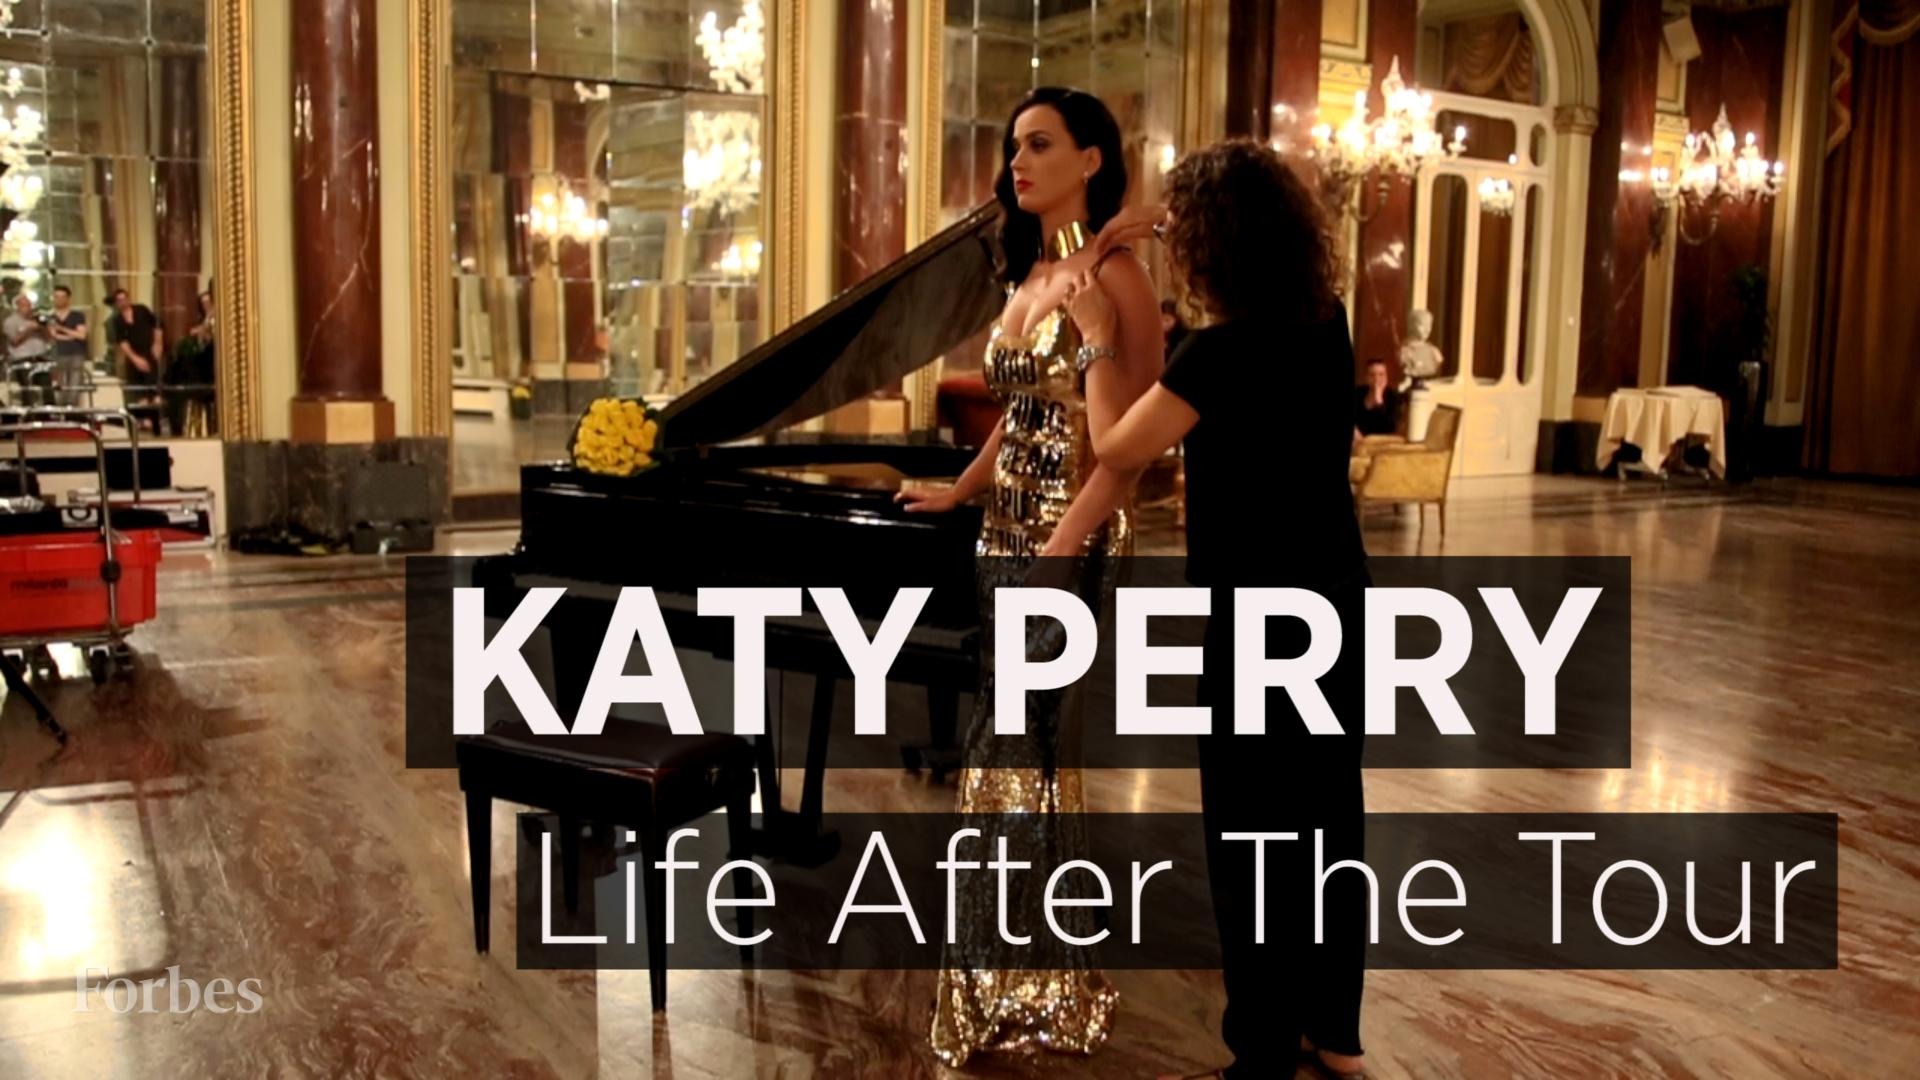 Katy Perry: Life After The Tour